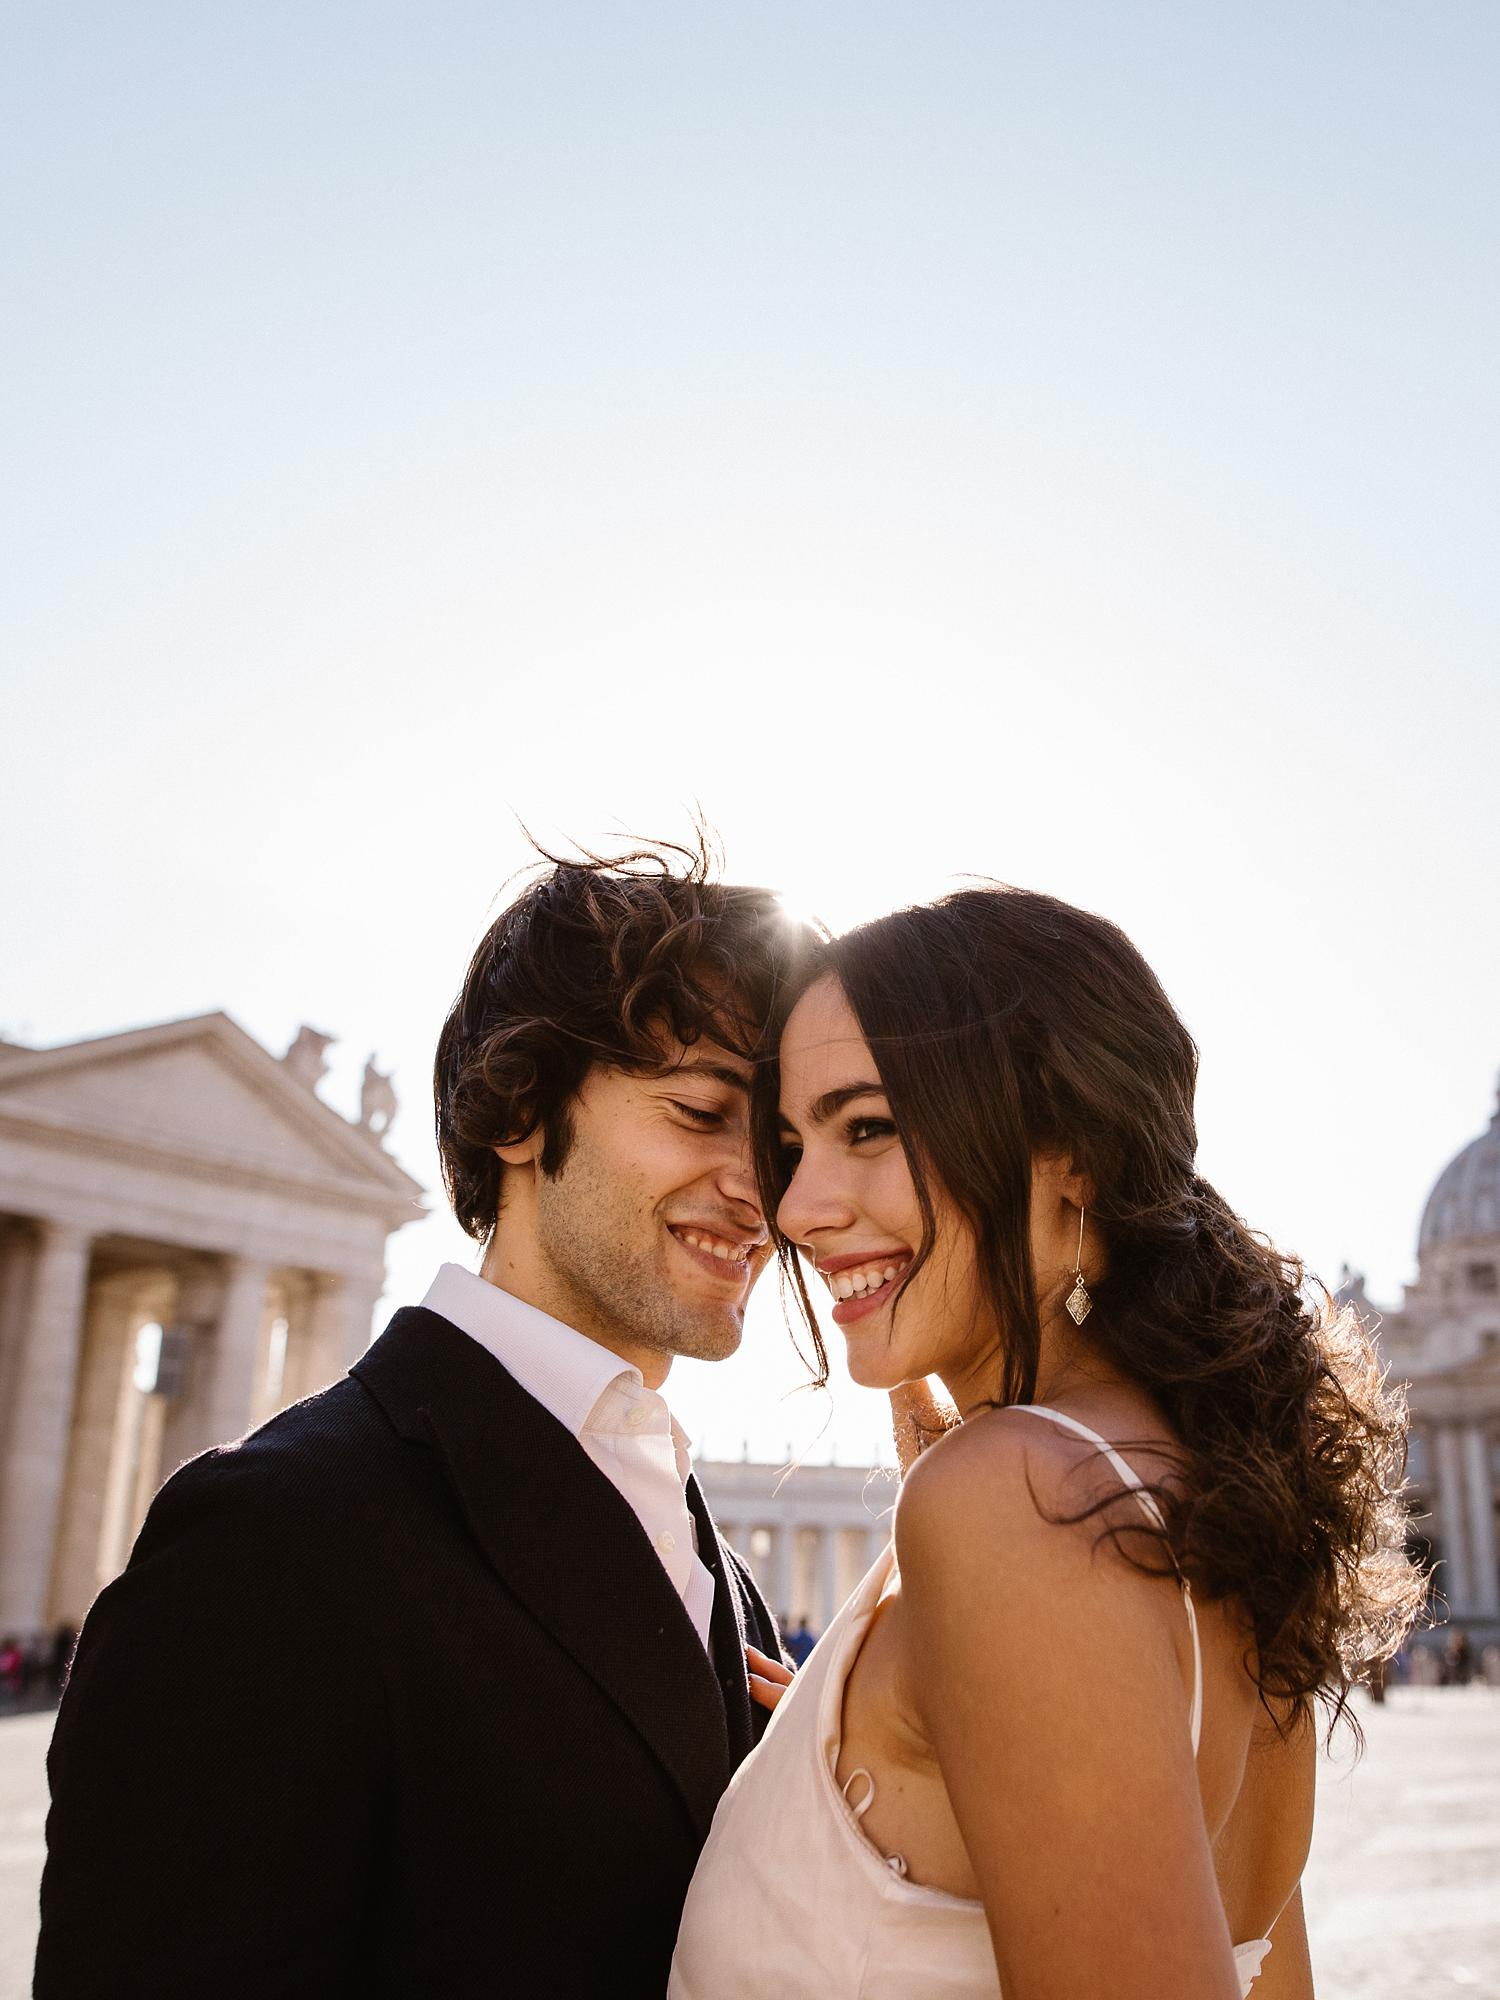 gs weddingphotographer rome 22 - Giulia & Simone - Elegant Couple Shooting in Rome